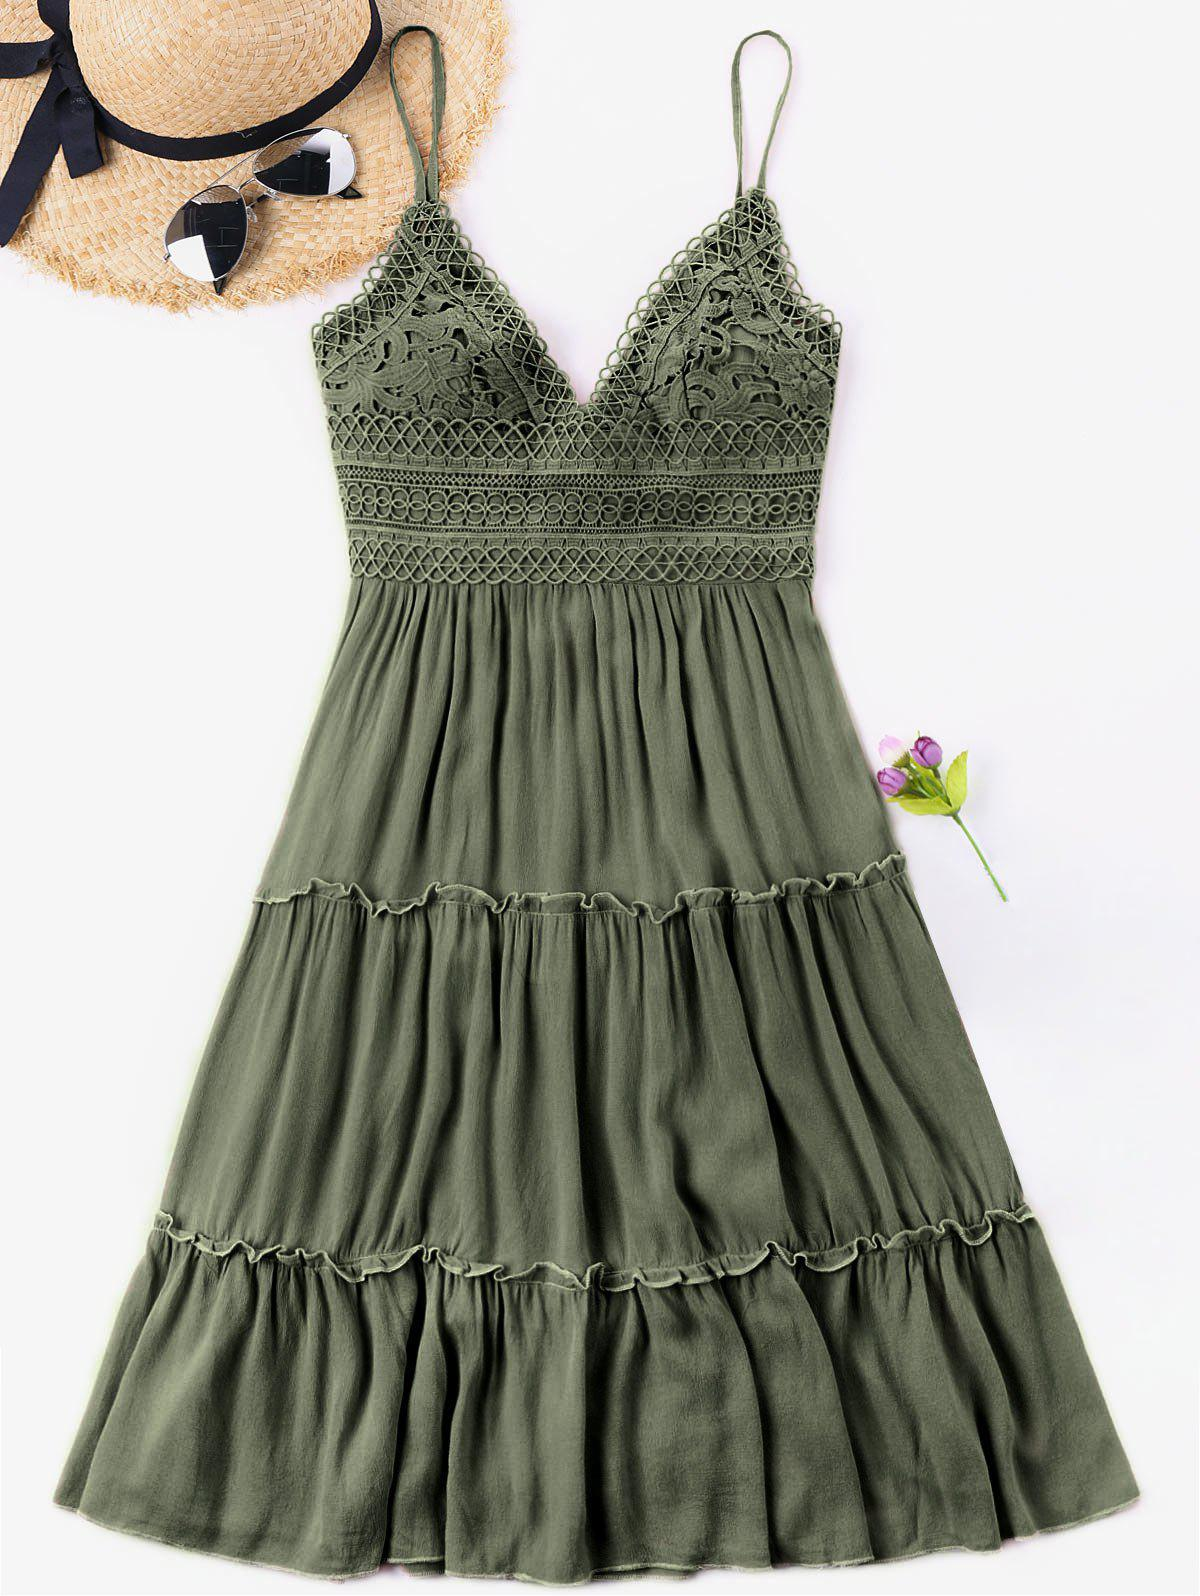 Spaghetti Strap Crochet Trim Cami Dress - Vert Noisette L